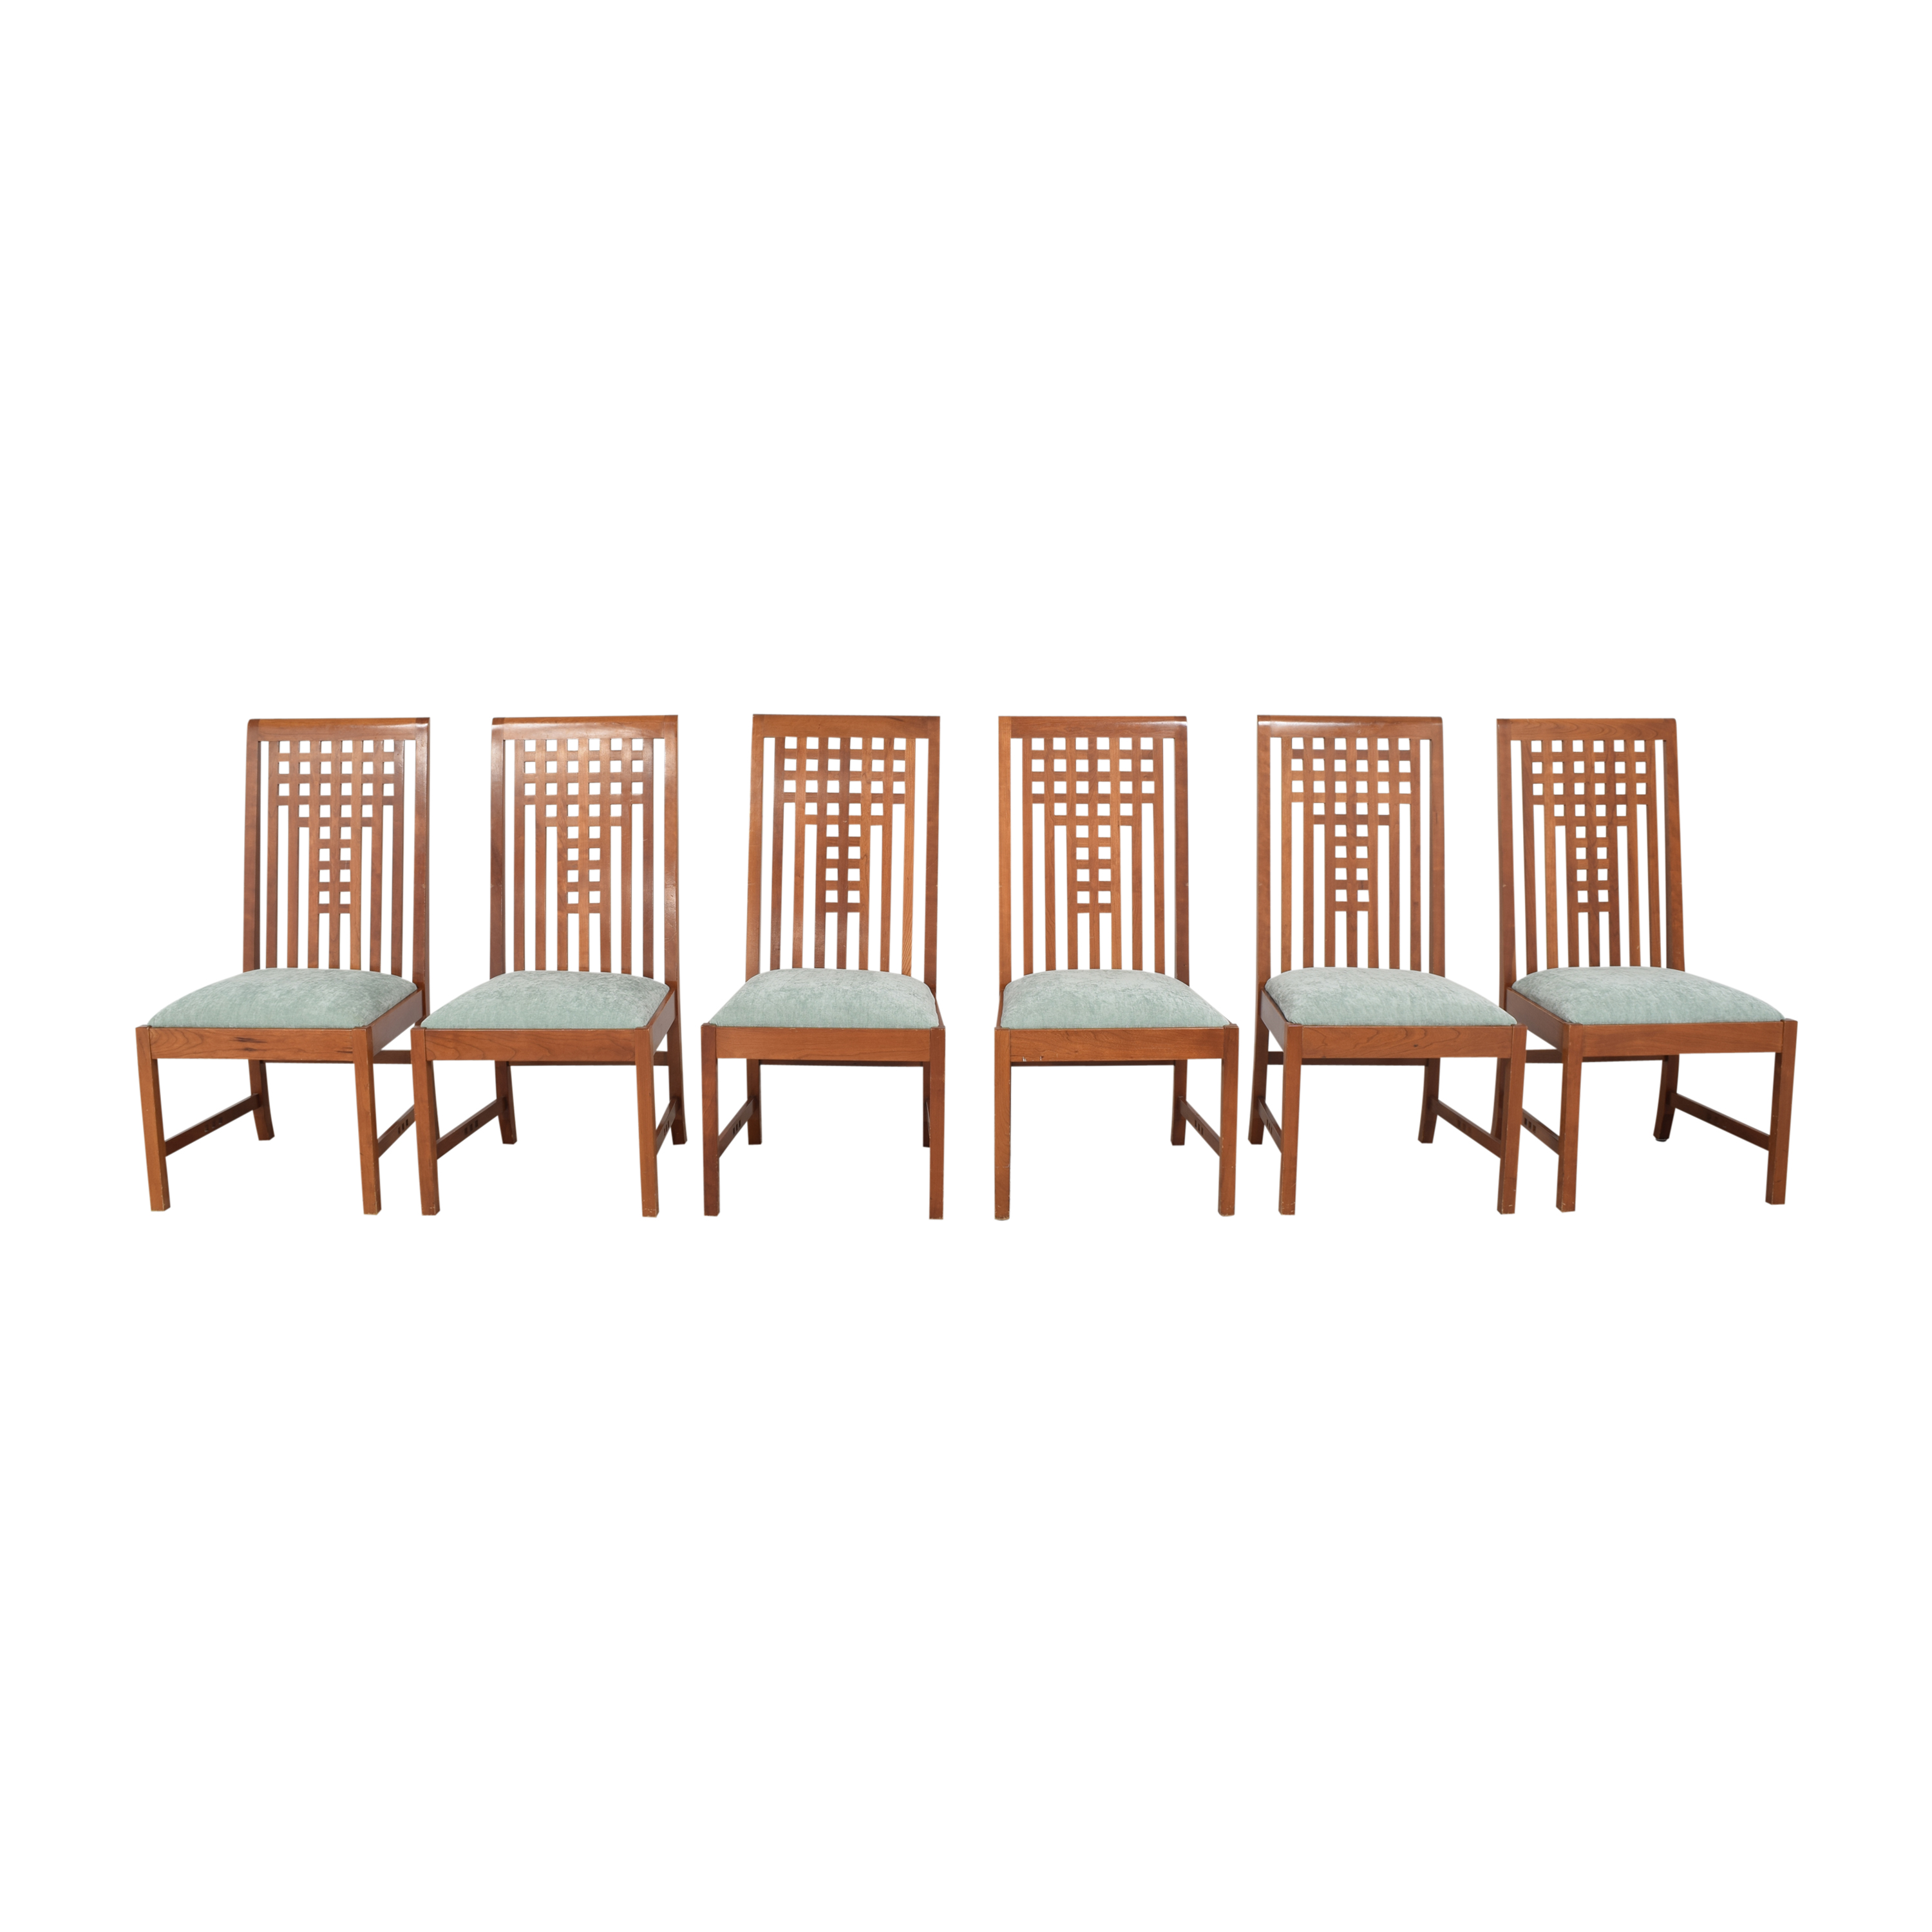 shop Stickley Furniture Stickley Furniture 21st Century Lattice Dining Side Chairs online